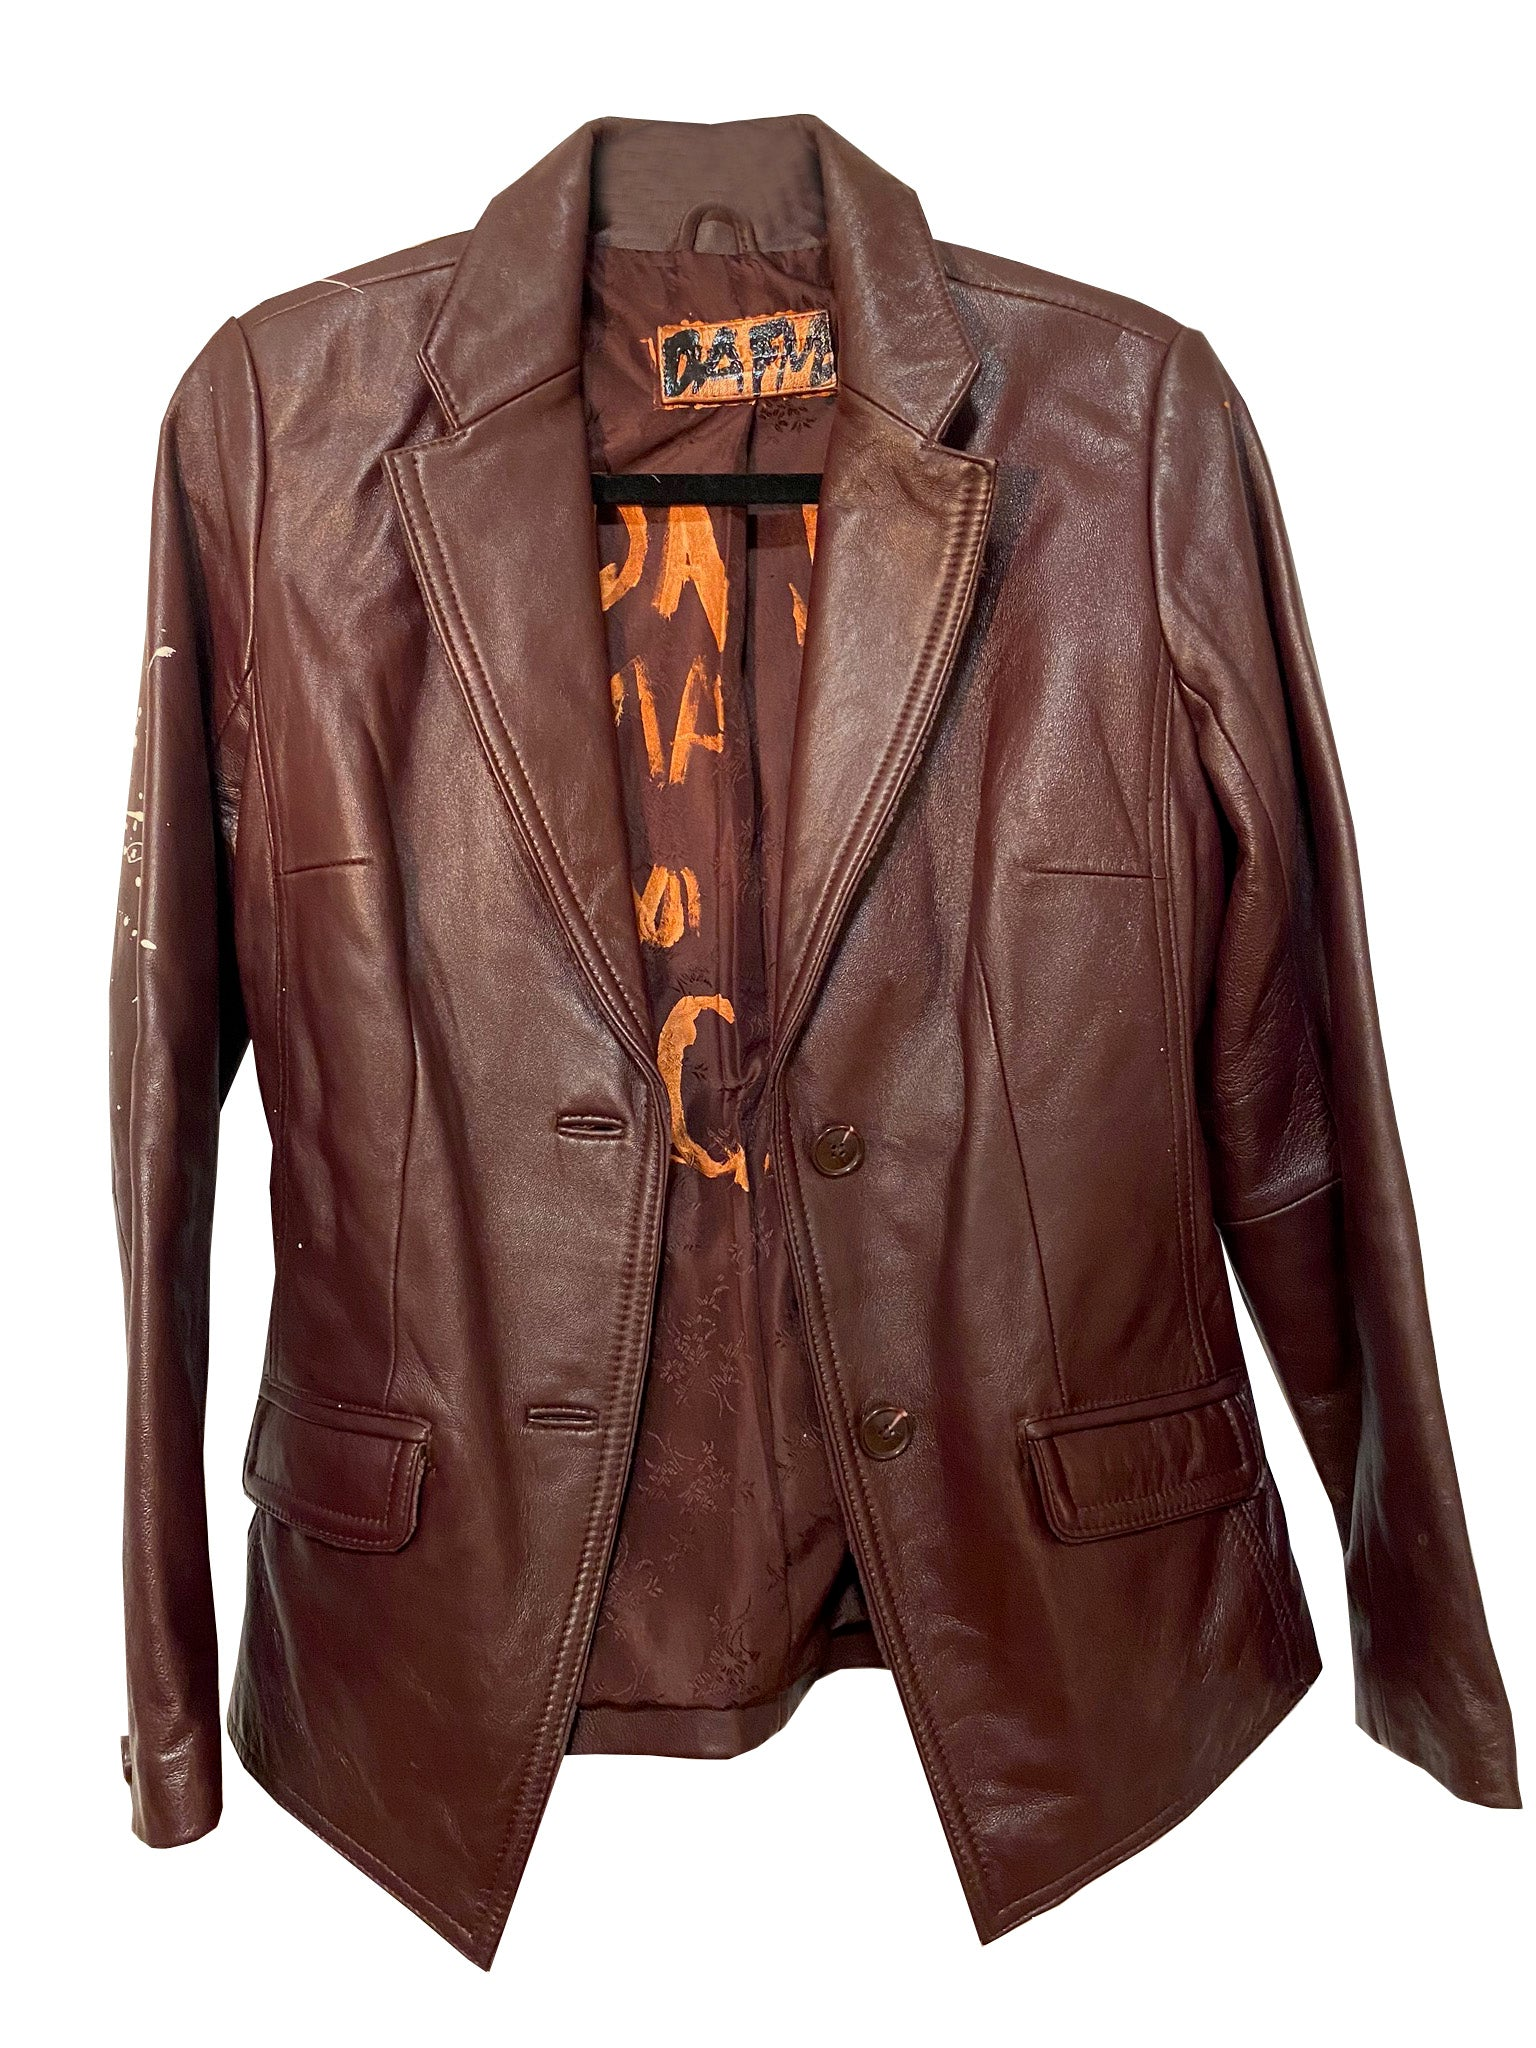 BROWN LEATHER JACKET HAND PAINTED